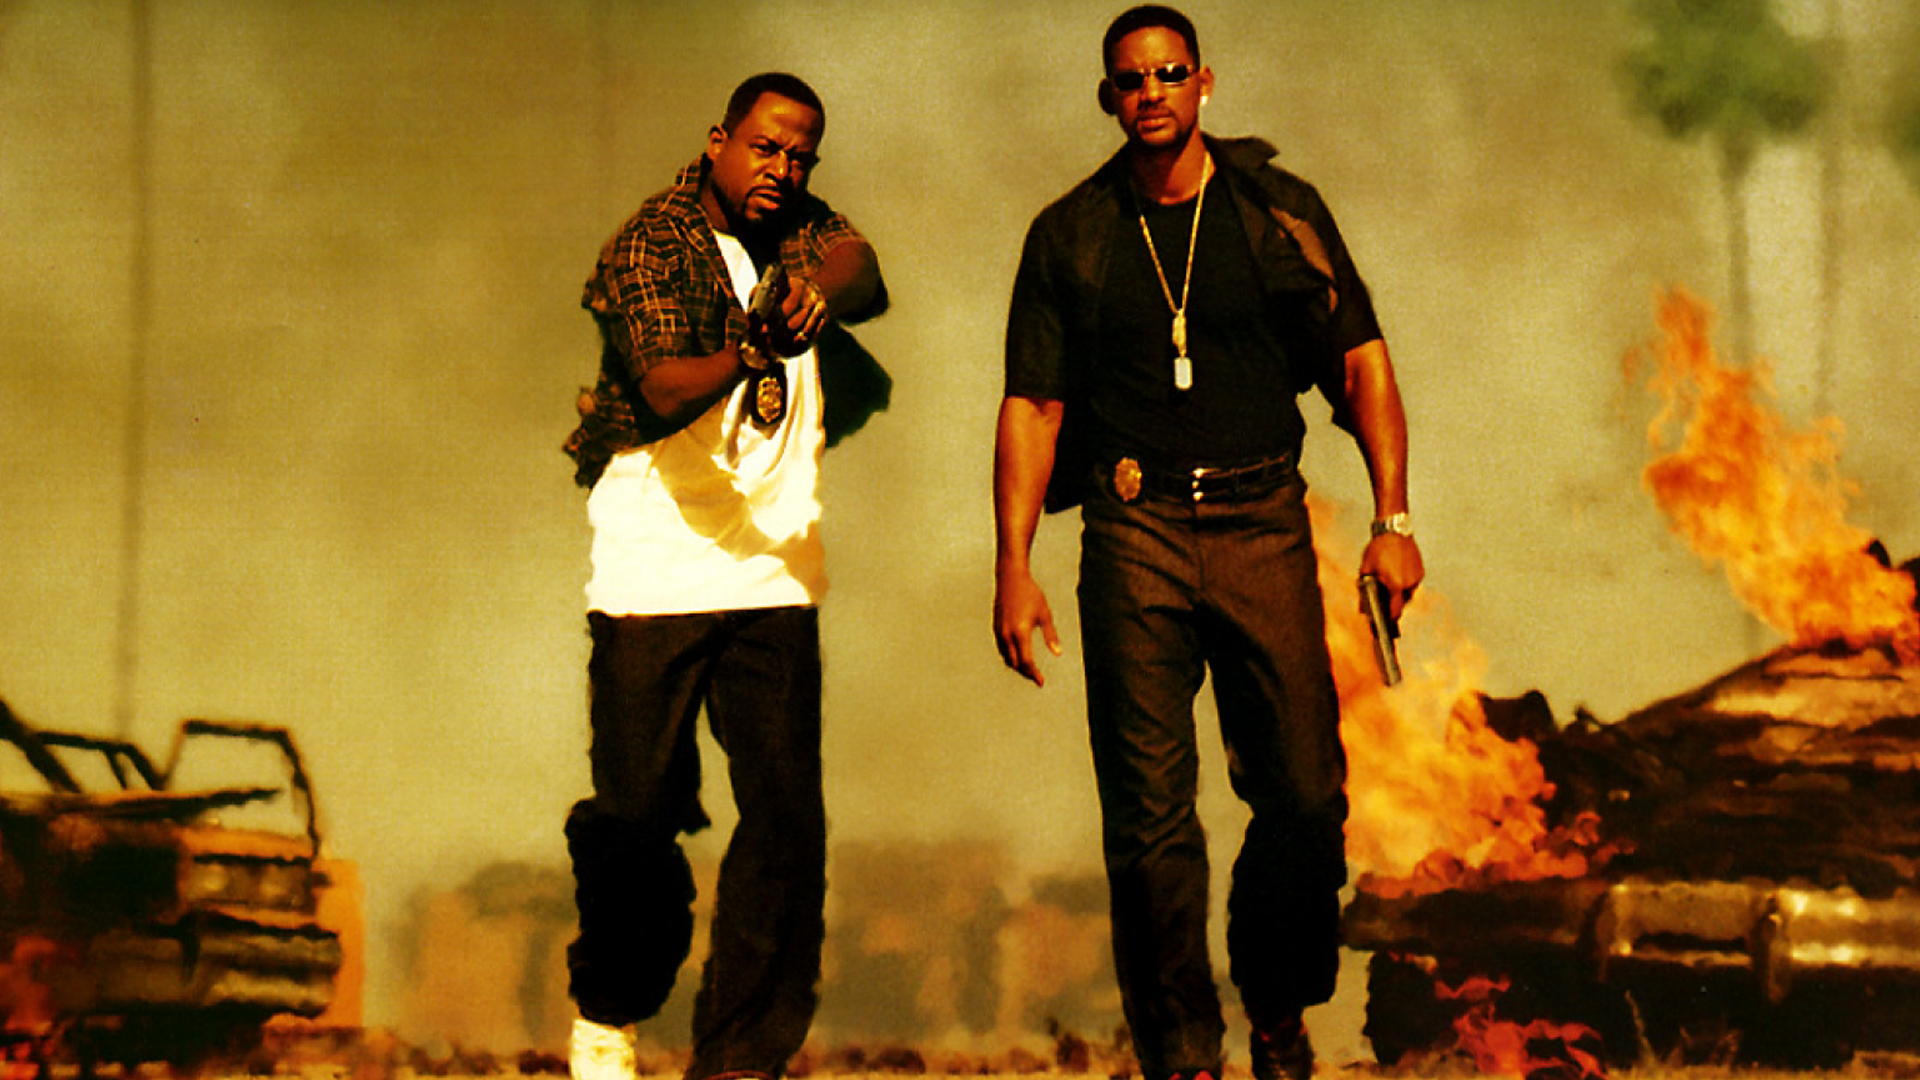 an analysis of the movie bad boys ii Watch bad boys ii (2003) watch bad boys ii (2003) full movie, watch bad boys ii (2003) in hd quality online for free, putlocker bad boys ii (2003.